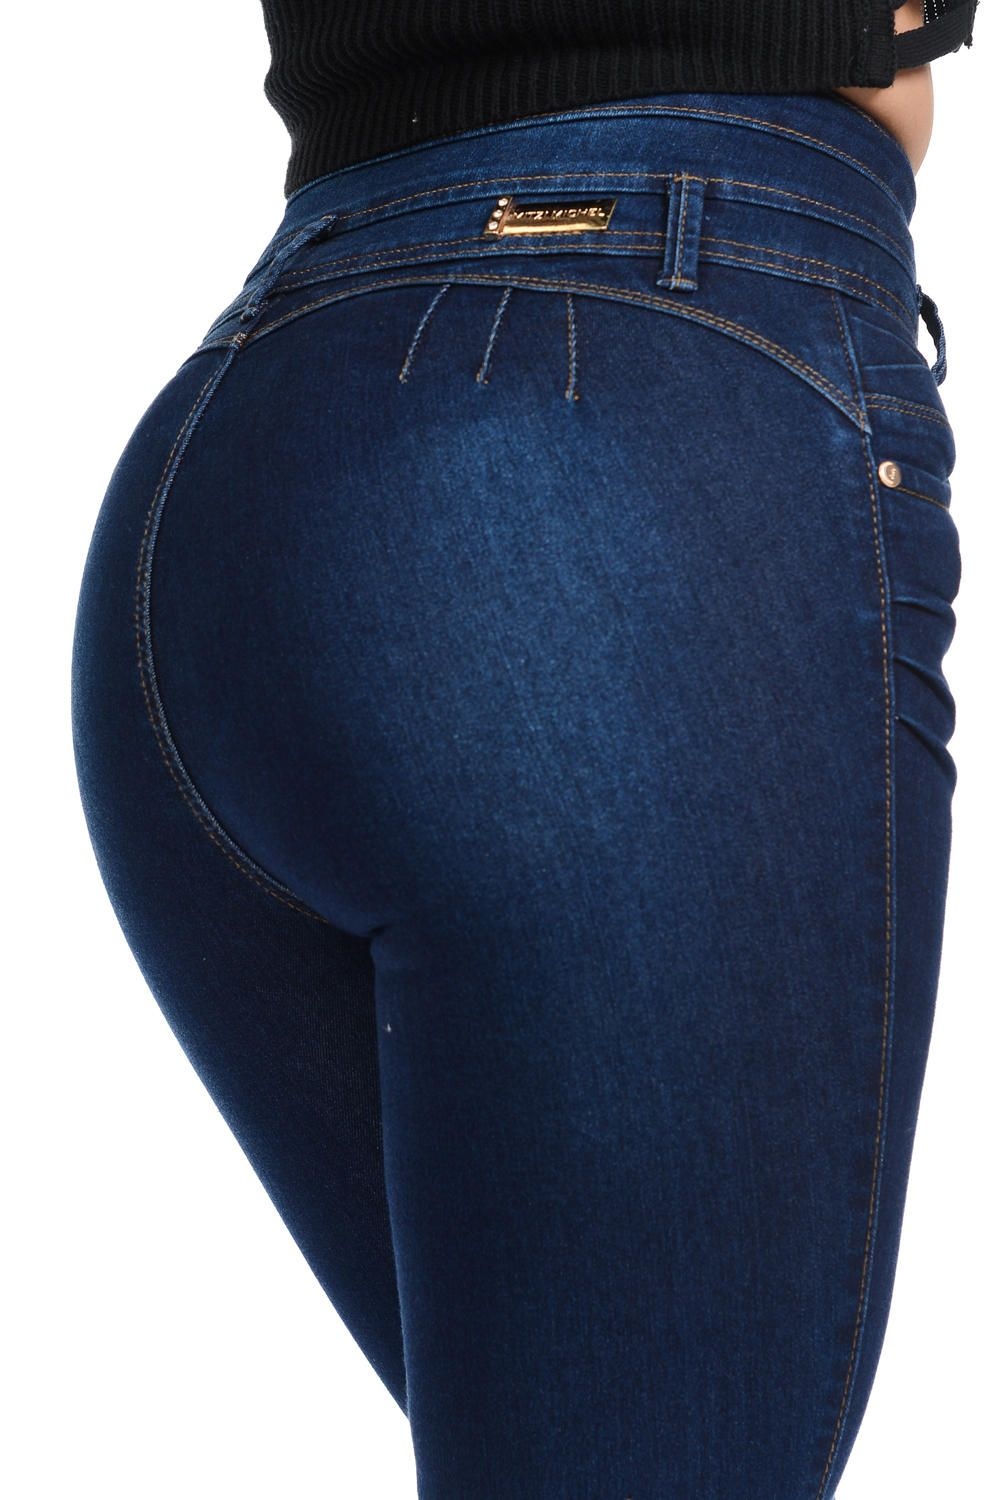 M.Michel Jeans, Push-Up - A10271